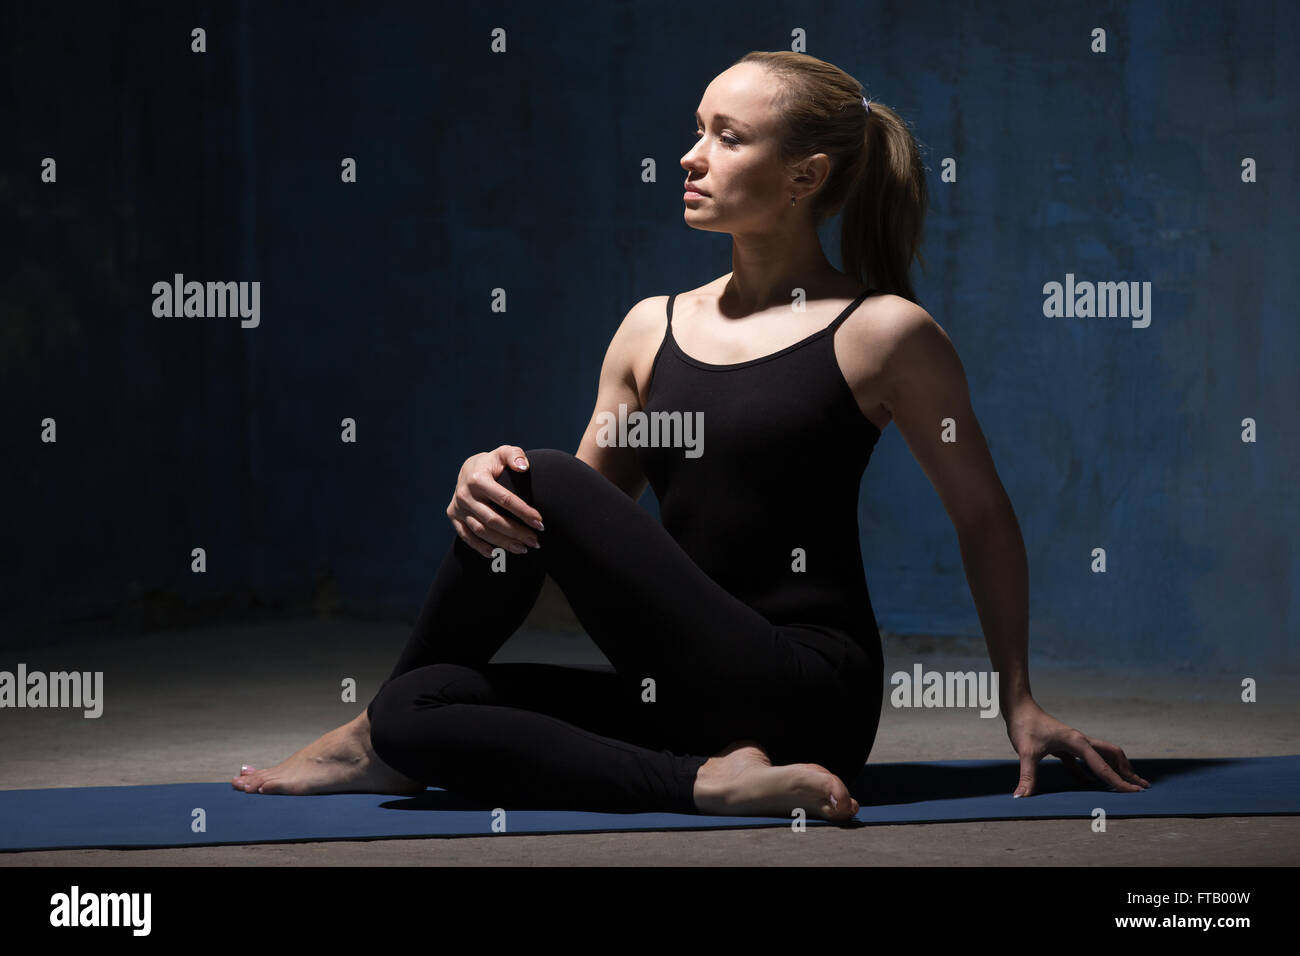 Portrait of beautiful sporty fit young woman in black sportswear working out indoors against grunge dark blue wall - Stock Image